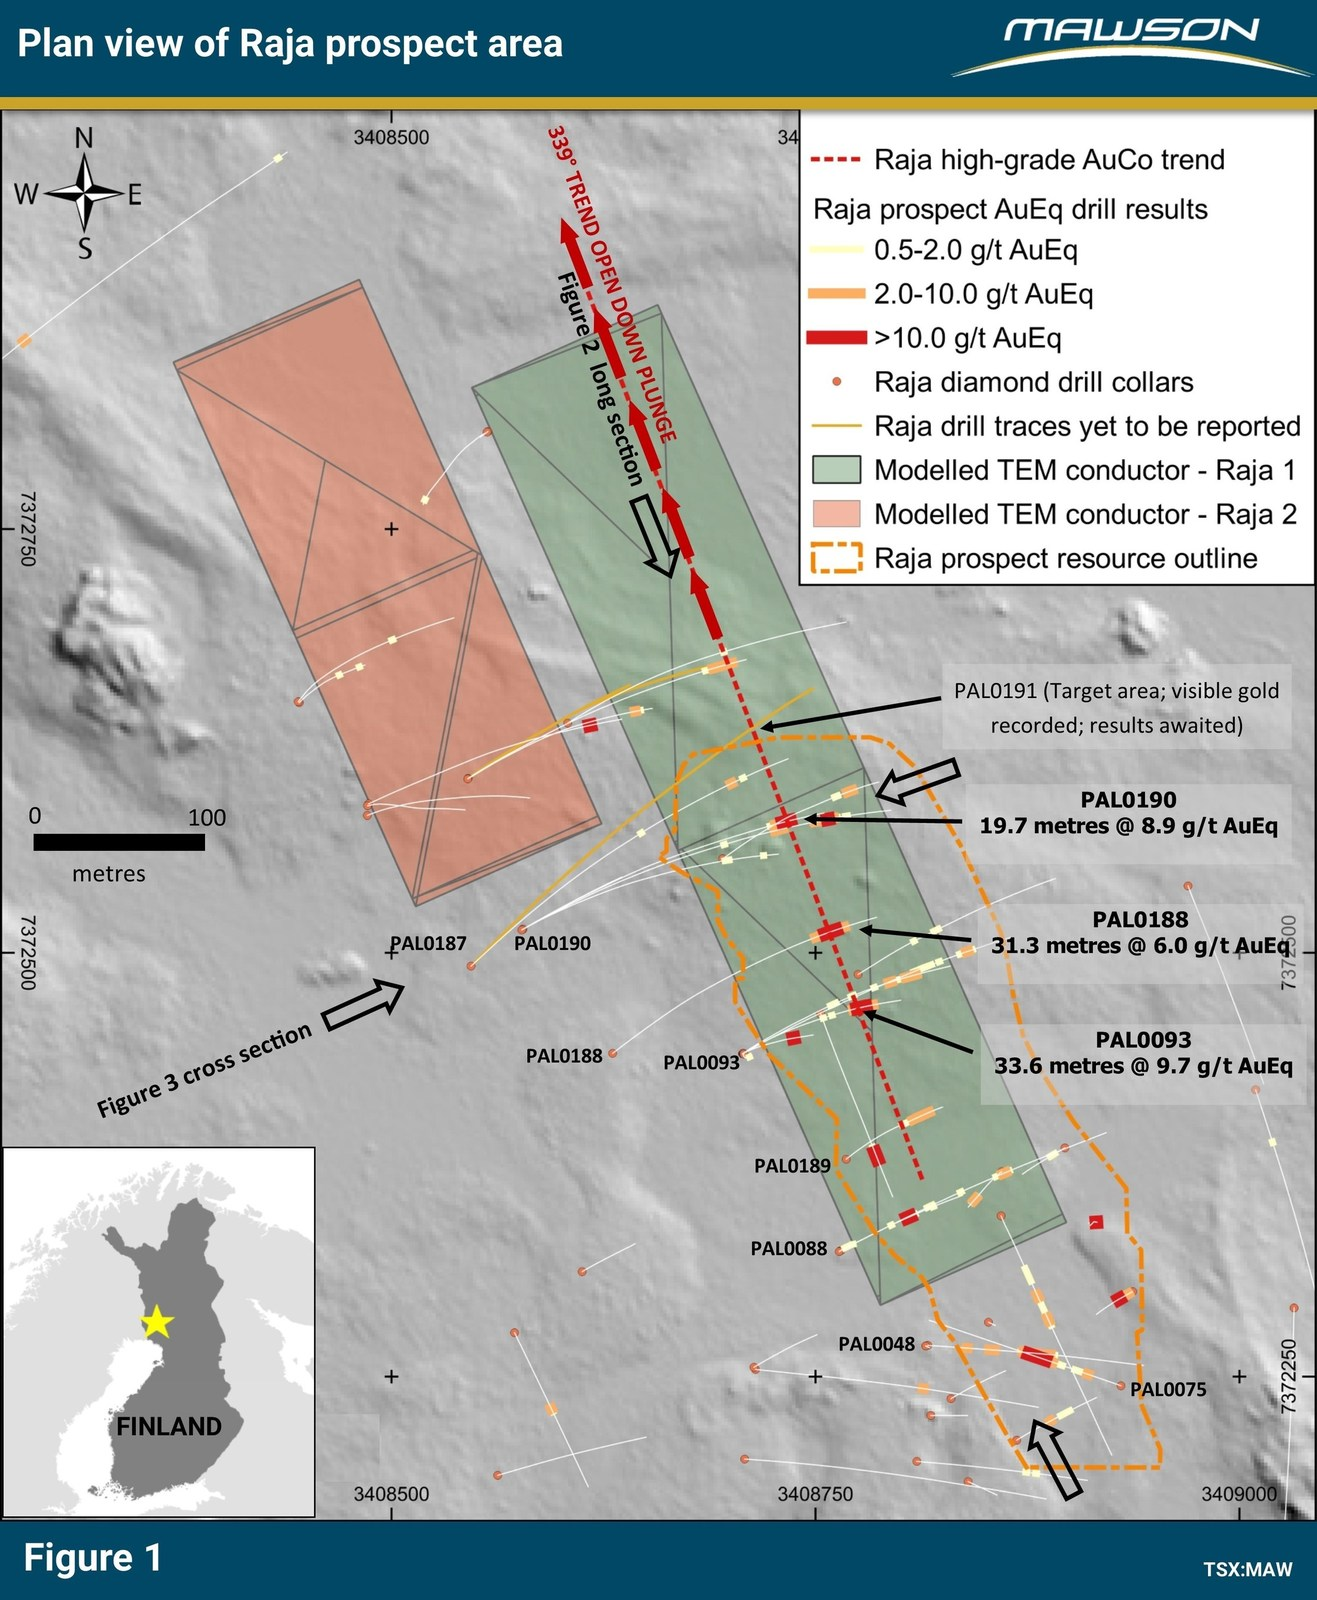 Figure 1: Plan of Raja prospect area indicating drill results, the outline of 43-101 resource, modelled ground TEM plates over a Lidar background. Note also the trend of the high-grade Au-Co trend of 339 degrees. For more detailed location information, refer to press release of April 23, 2019.